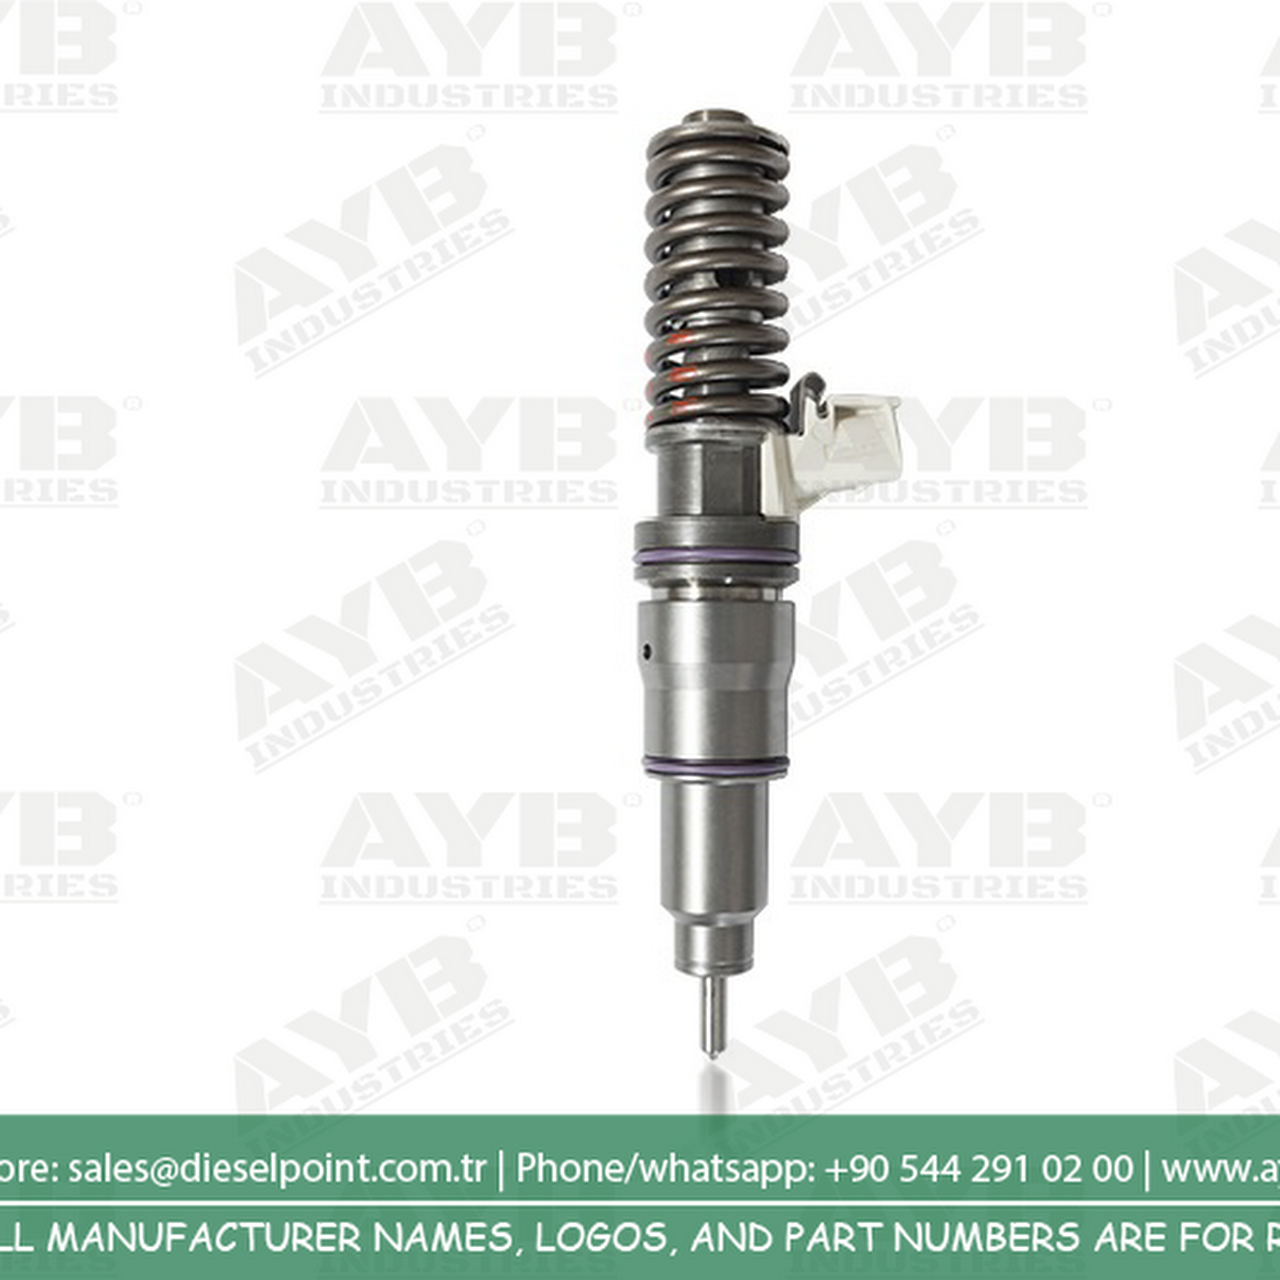 AYB INDUSTRIES - Auto Parts Store